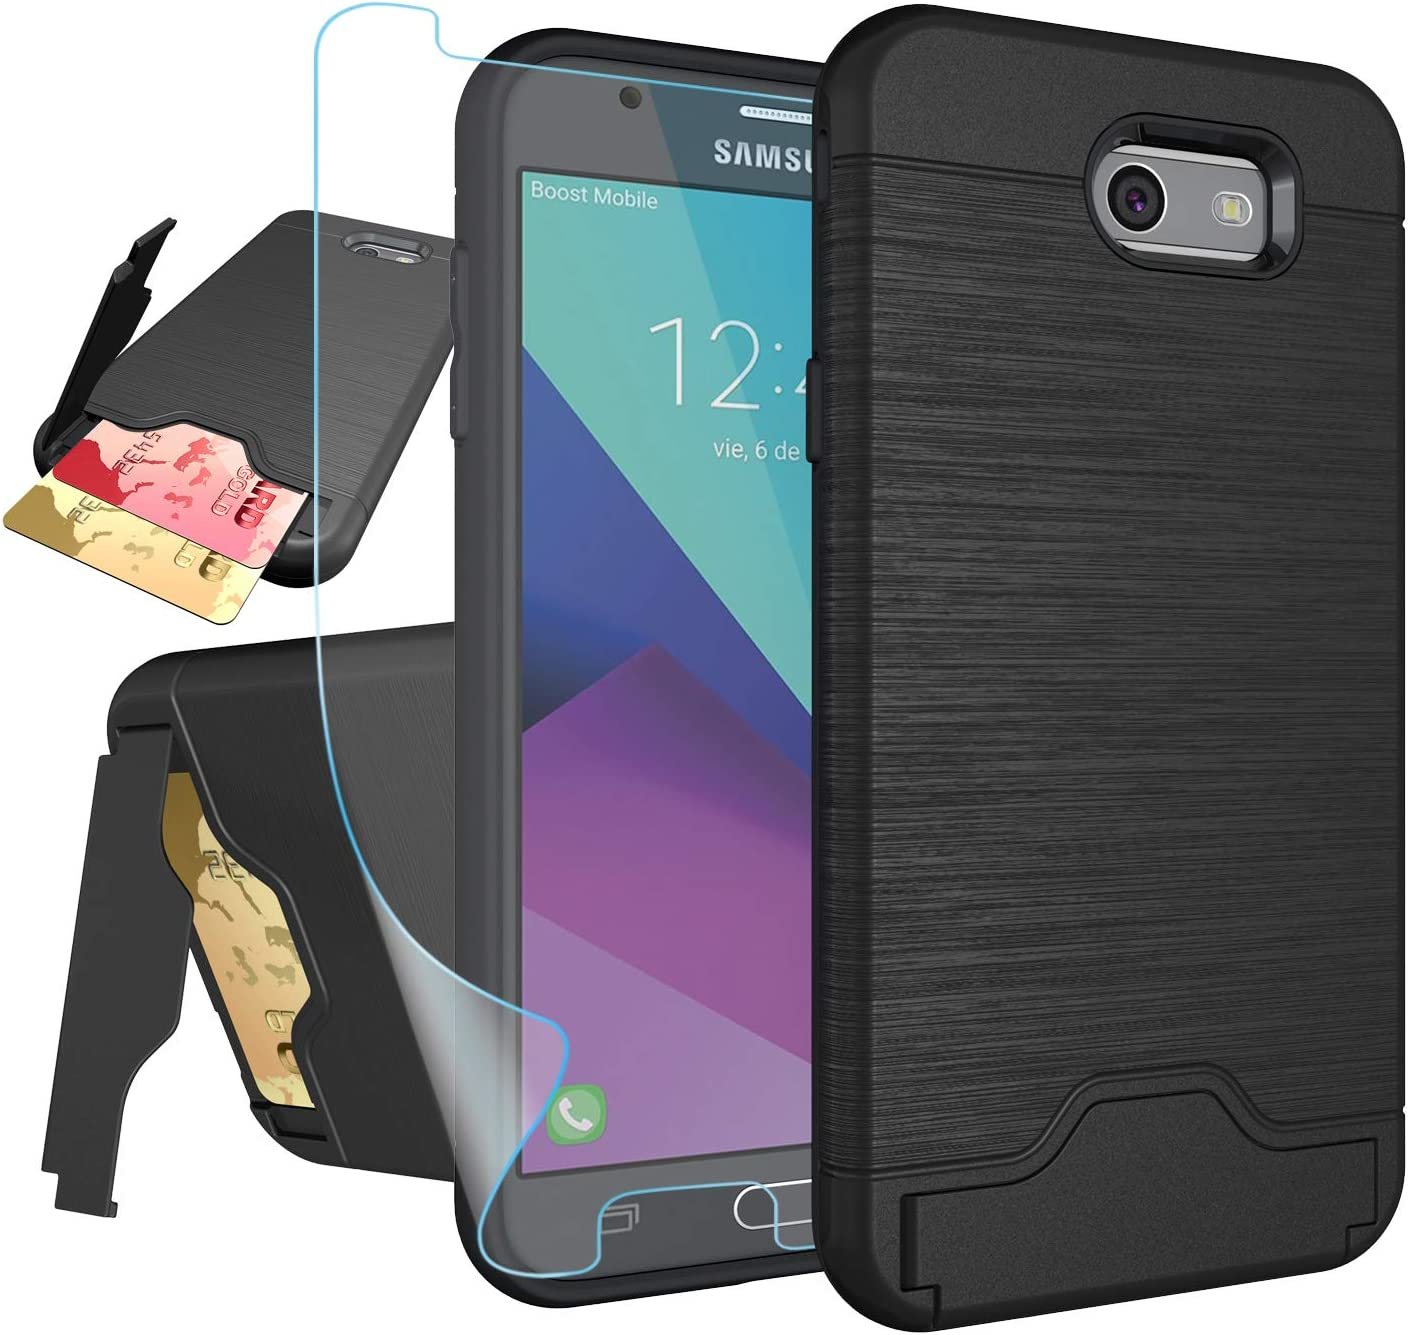 Galaxy J7 V 2017/ J7 Perx/J7 Prime/J7 Sky Pro/Halo Case with HD Screen Protector,NiuBox[Card Slot Wallet][Kickstand] Full Body Shock Absorption Protective Phone Case for Samsung J7V 2017-Black